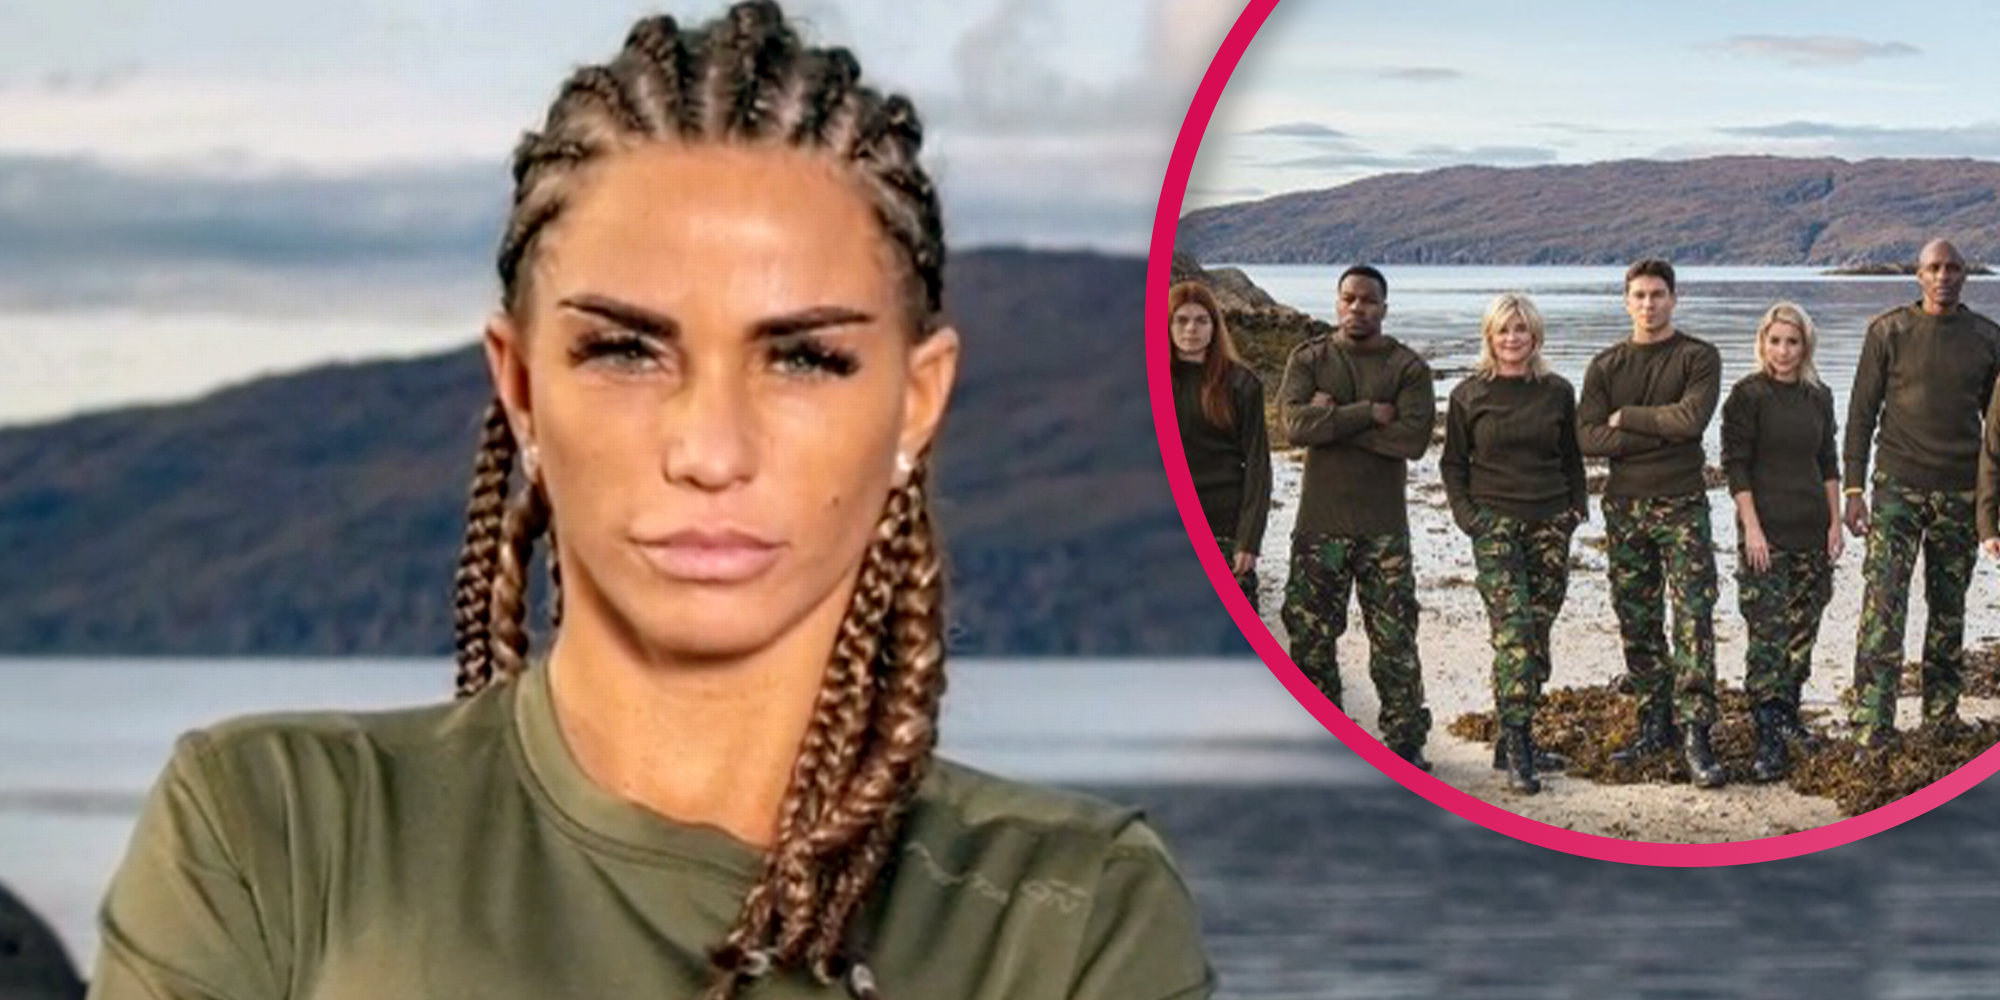 Celebrity SAS: Who Dares Wins – start date, cast, filming locations and more